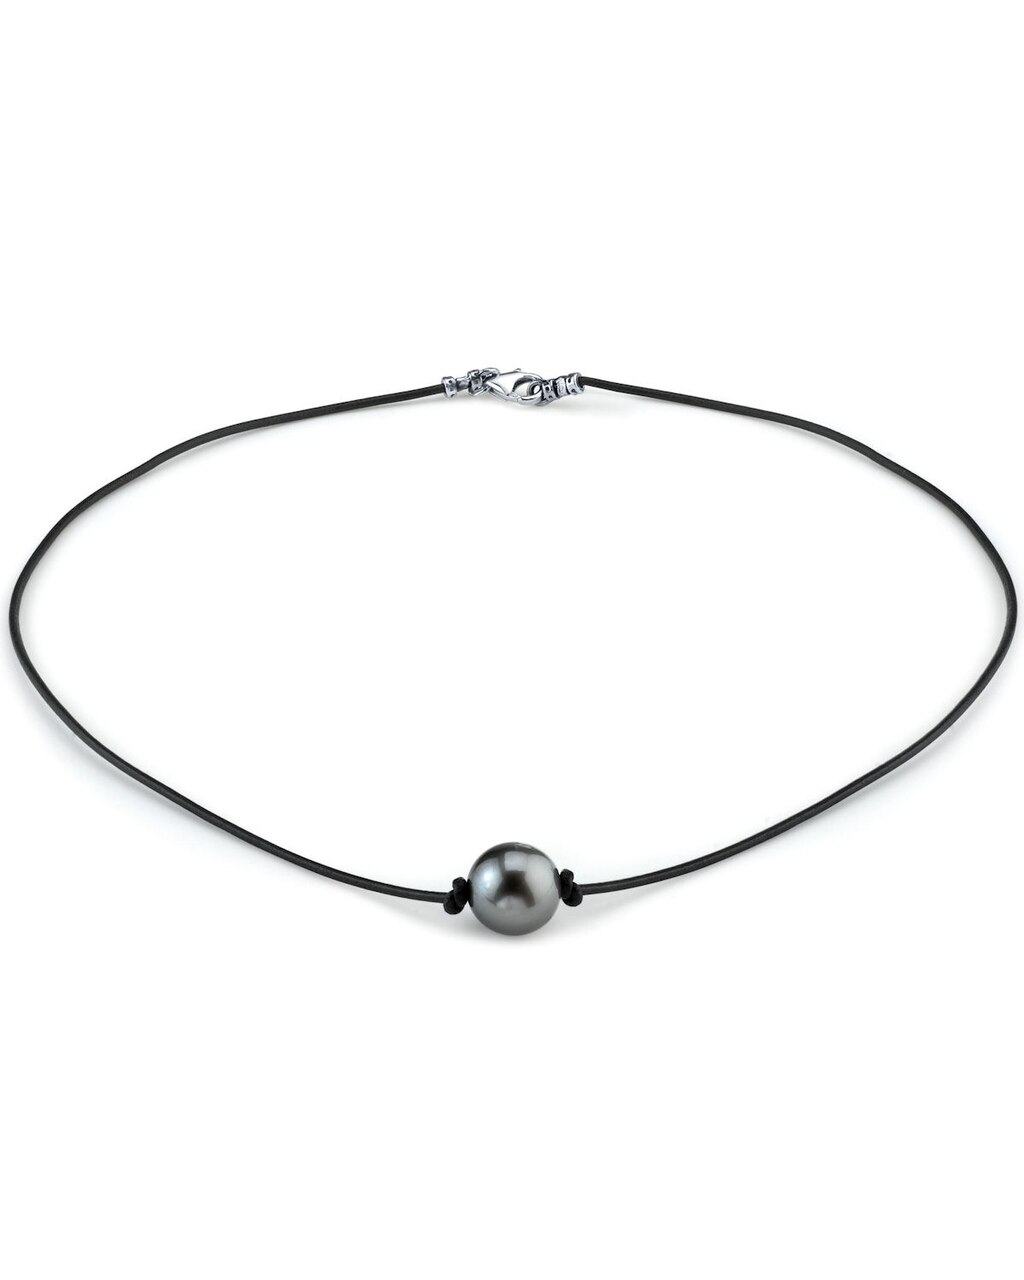 This beautiful necklace features a round shaped Tahitian South Sea pearl